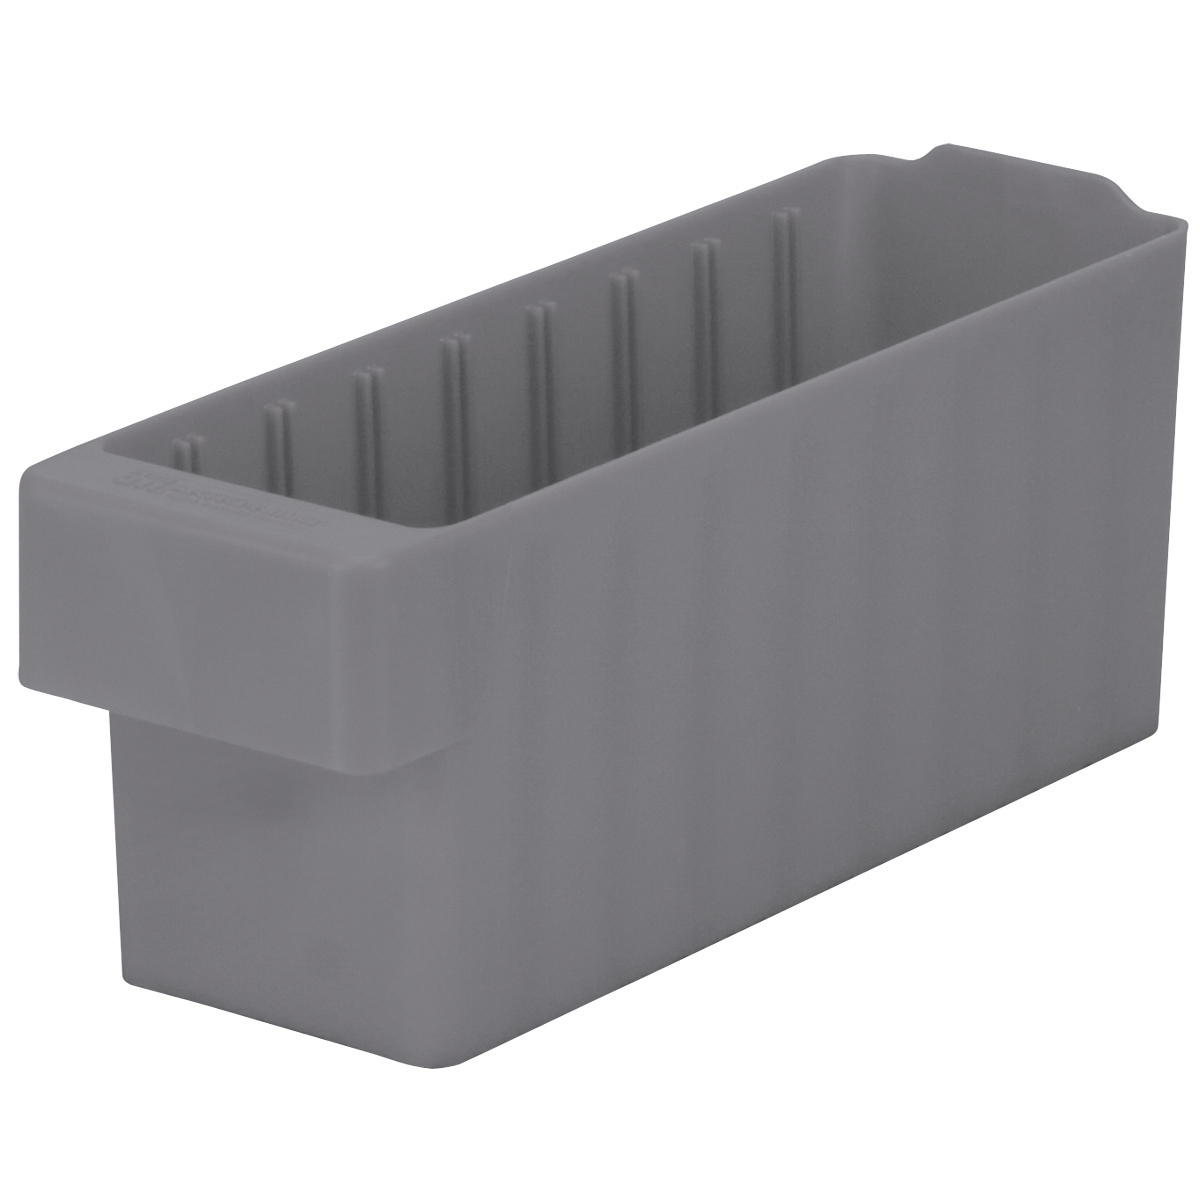 AkroDrawer 11-5/8 x 3-3/4 x 4-5/8, Gray (31142GRY).  This item sold in carton quantities of 6.